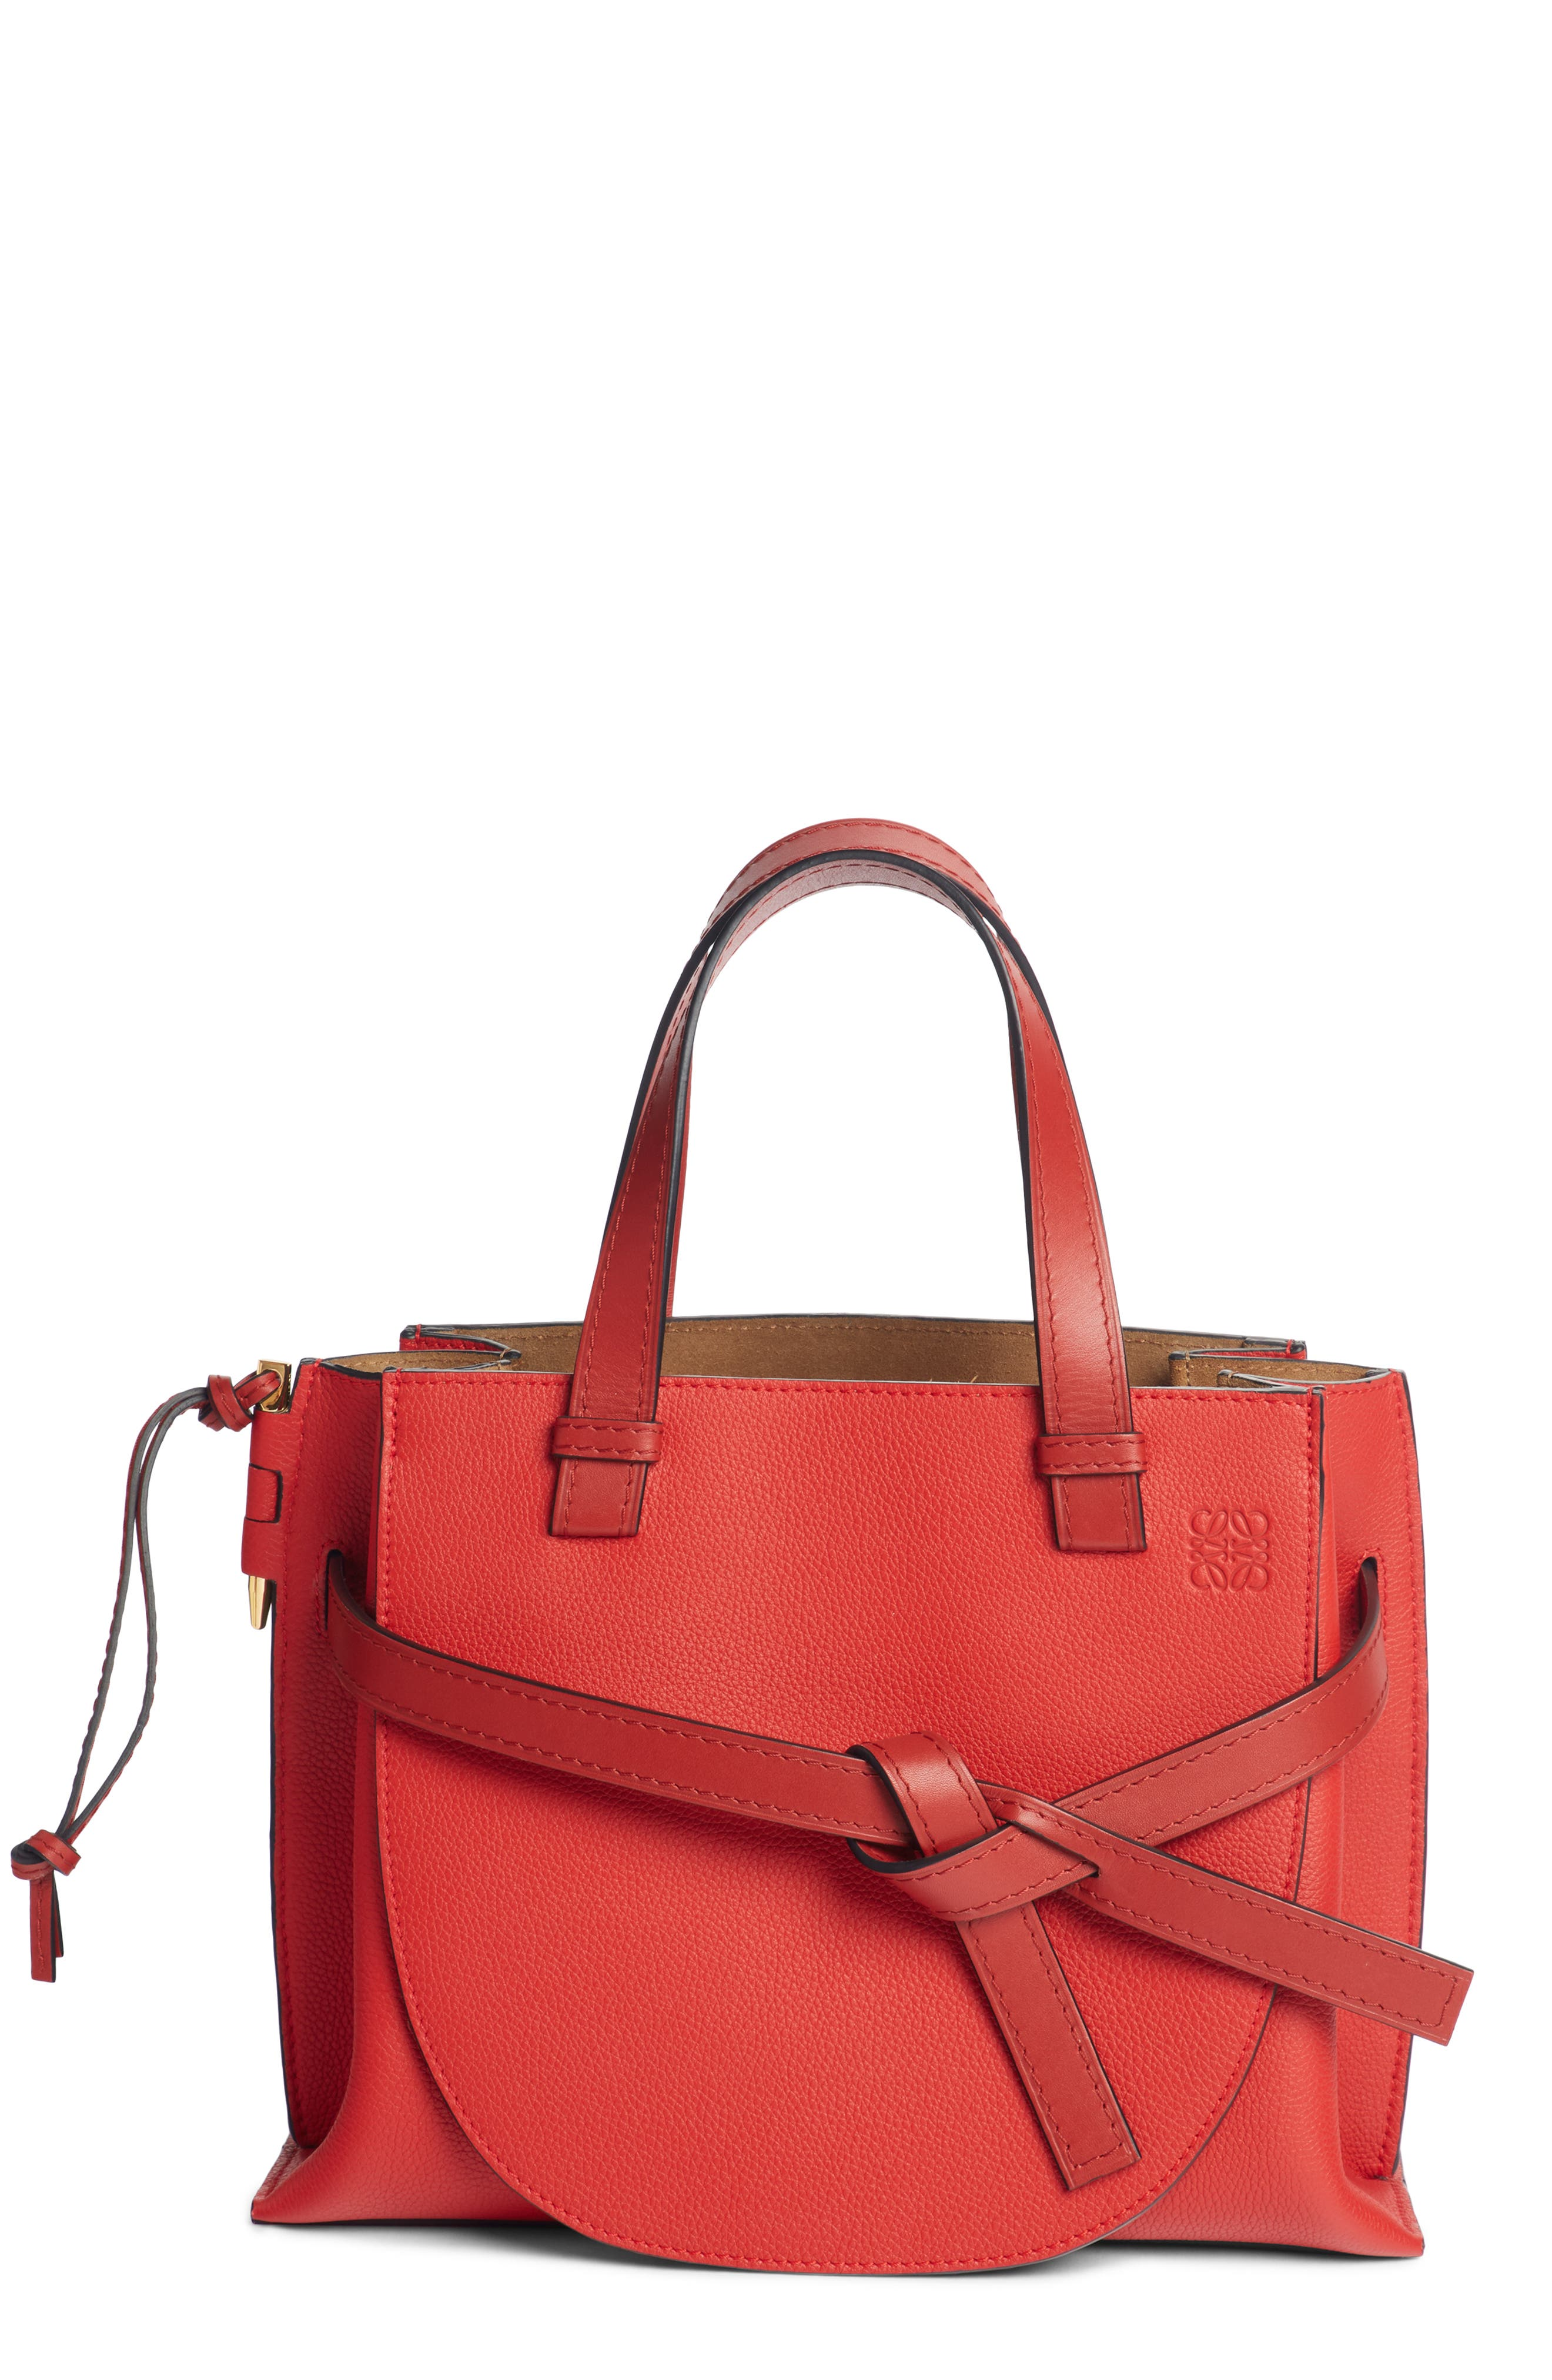 Gate Calfskin Leather Tote,                         Main,                         color, SCARLET RED/ BURNT RED